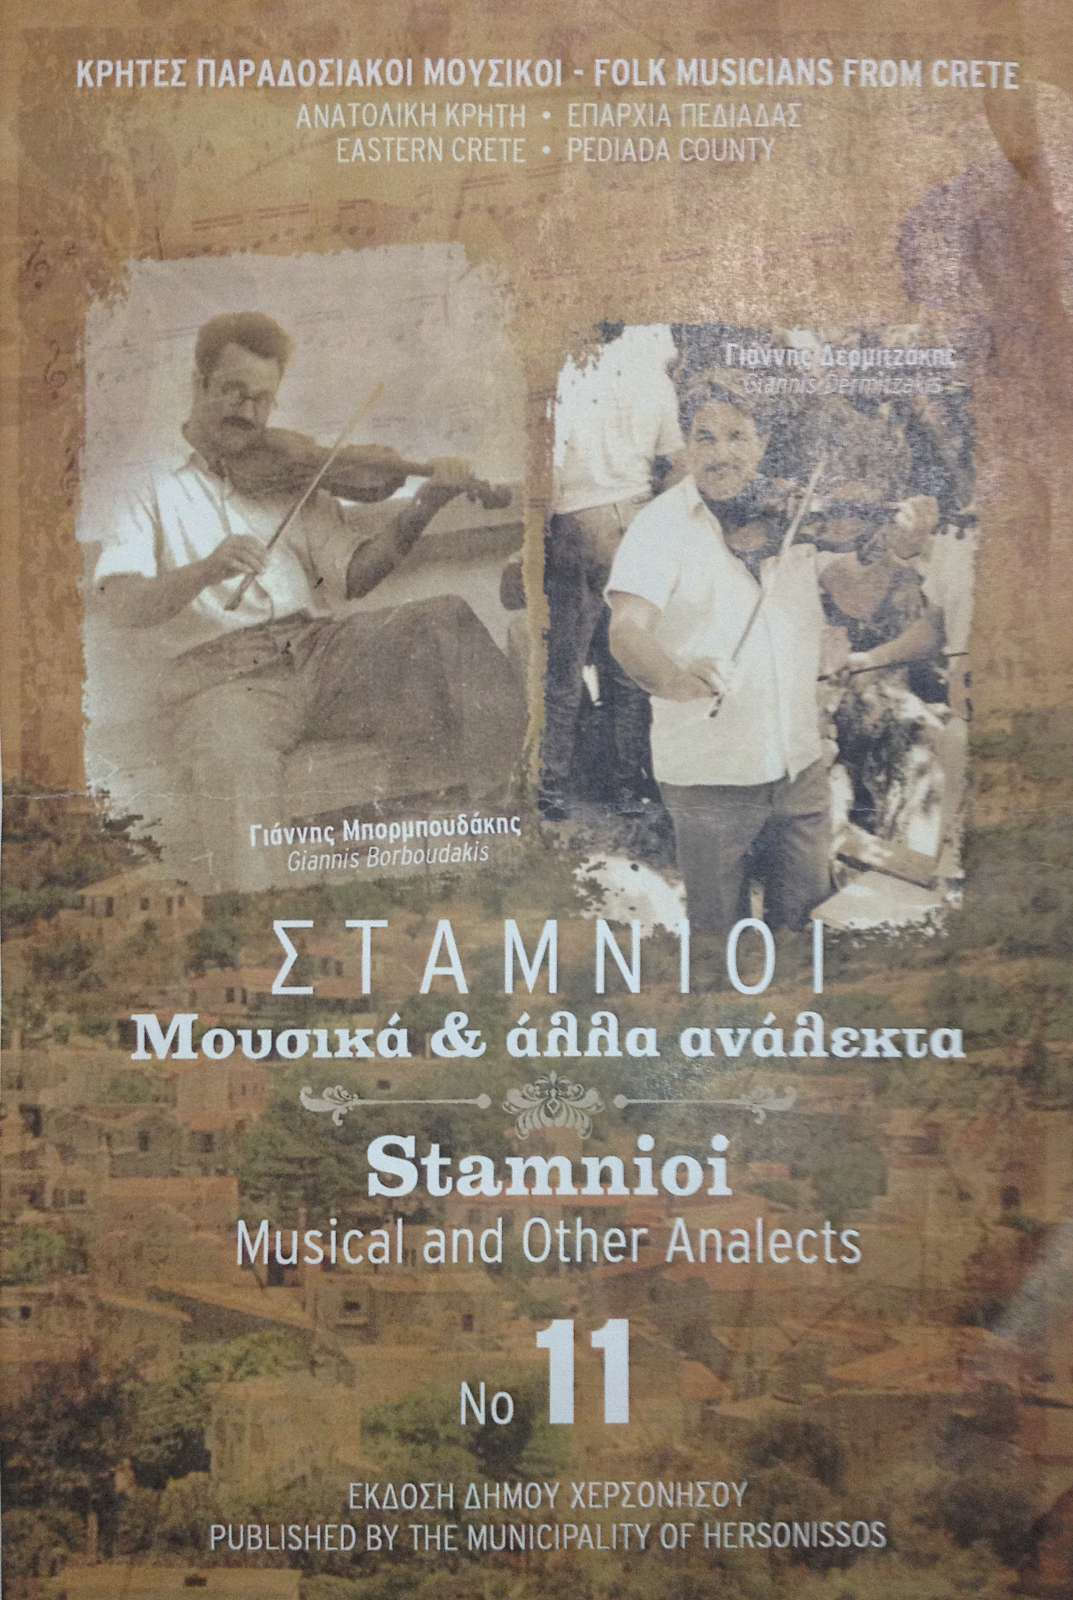 Musical and other Analects